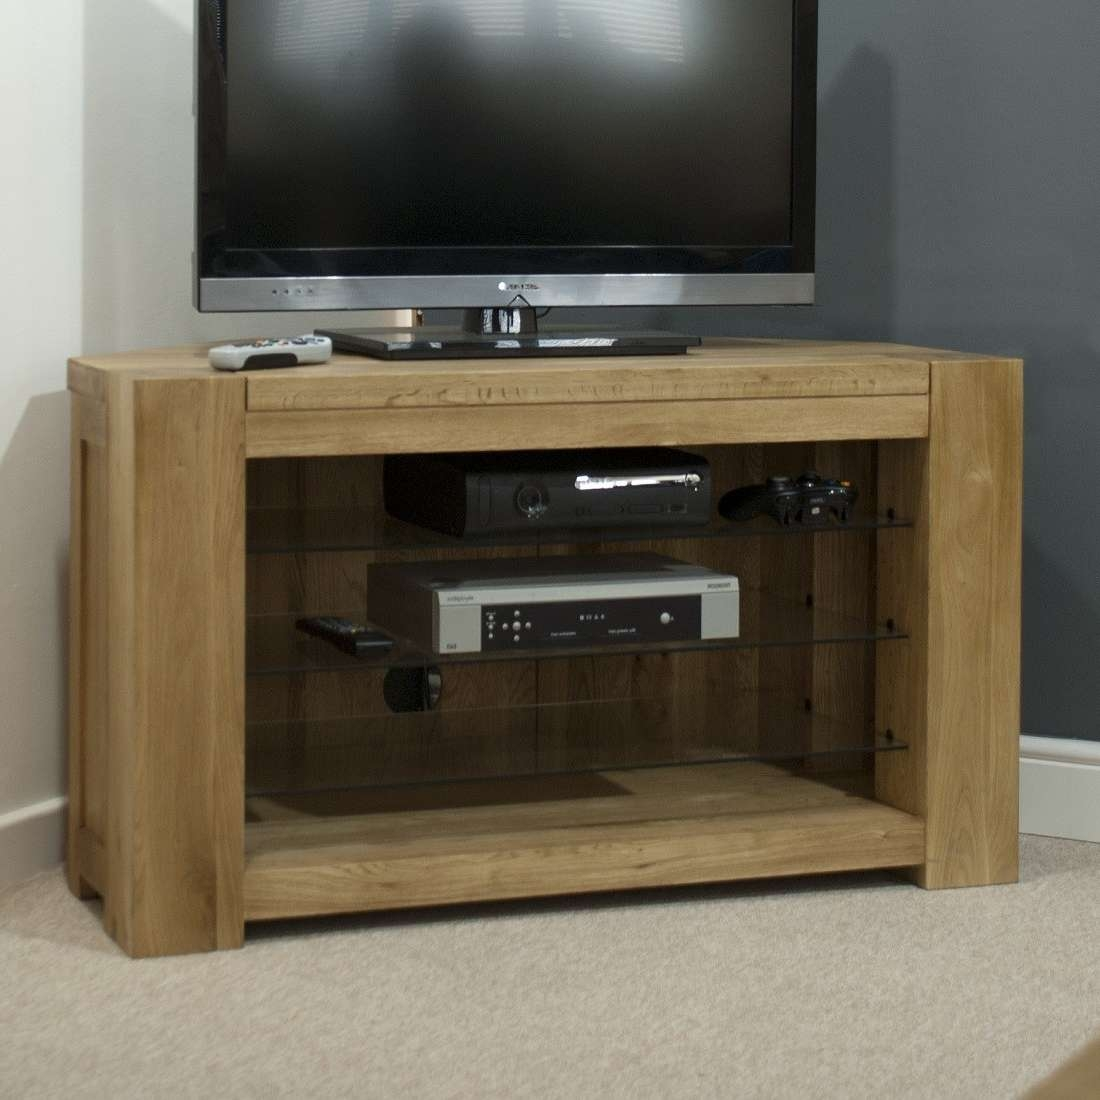 Tv Stands : Oak Tv Units Cabinets Furniture Uk Wooden Corner Solid For Wooden Tv Stands And Cabinets (View 9 of 15)